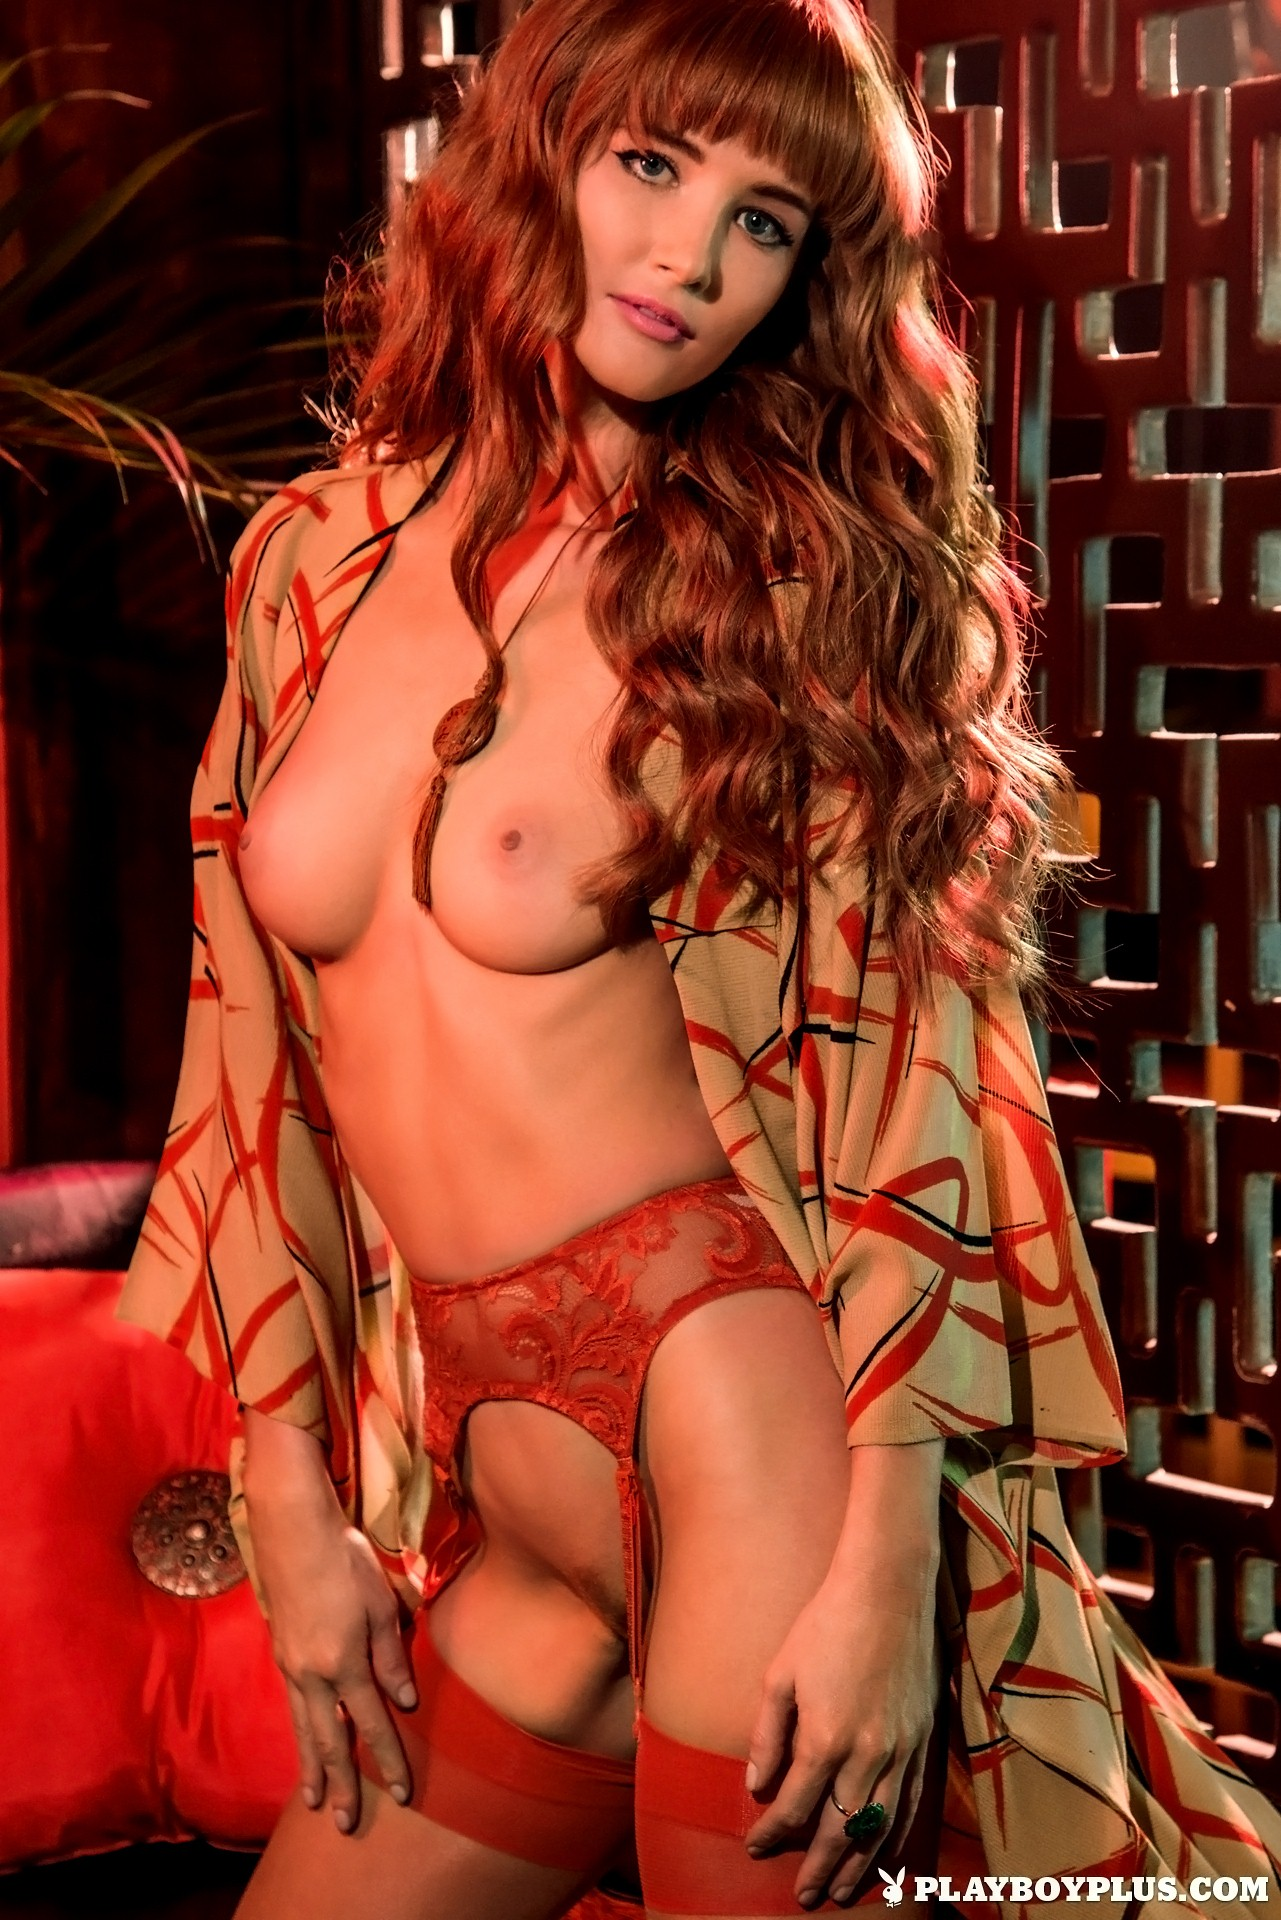 Thank for Red head playmates nude urbanization any